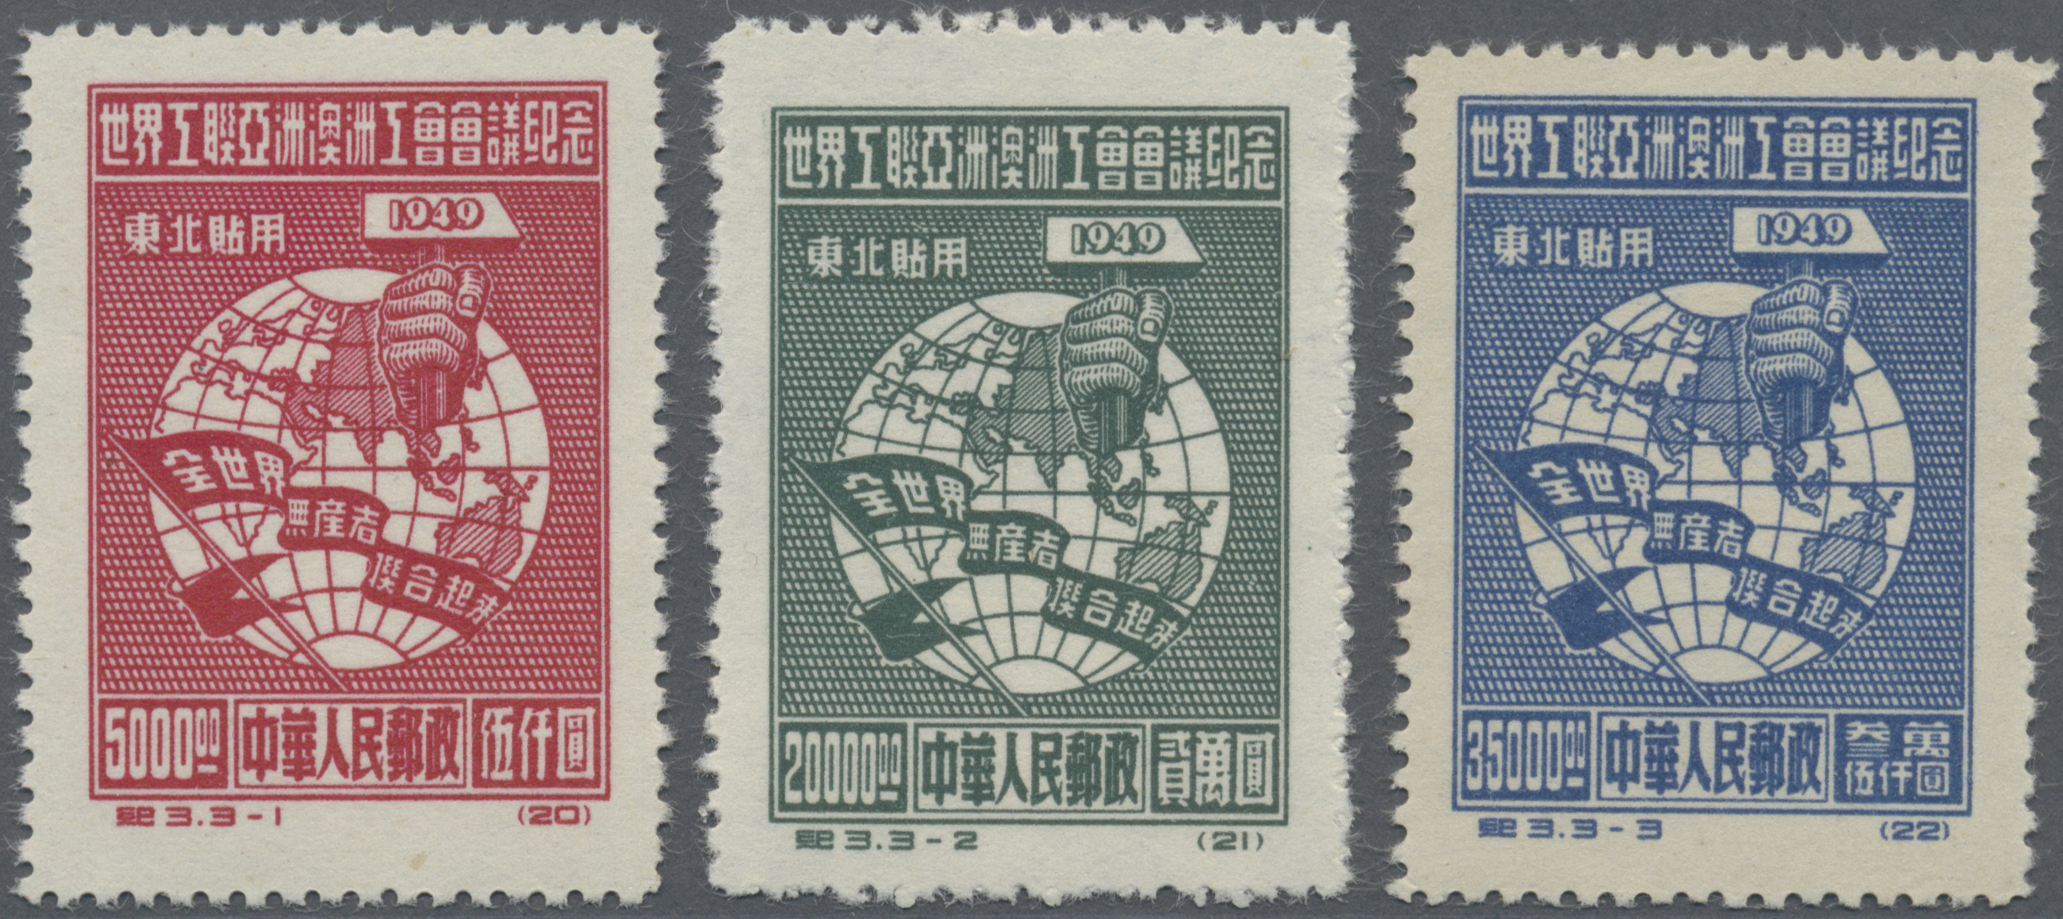 Lot 34486 - China - Volksrepublik - Provinzen  -  Auktionshaus Christoph Gärtner GmbH & Co. KG Collections Germany,  Collections Supplement, Surprise boxes #39 Day 7